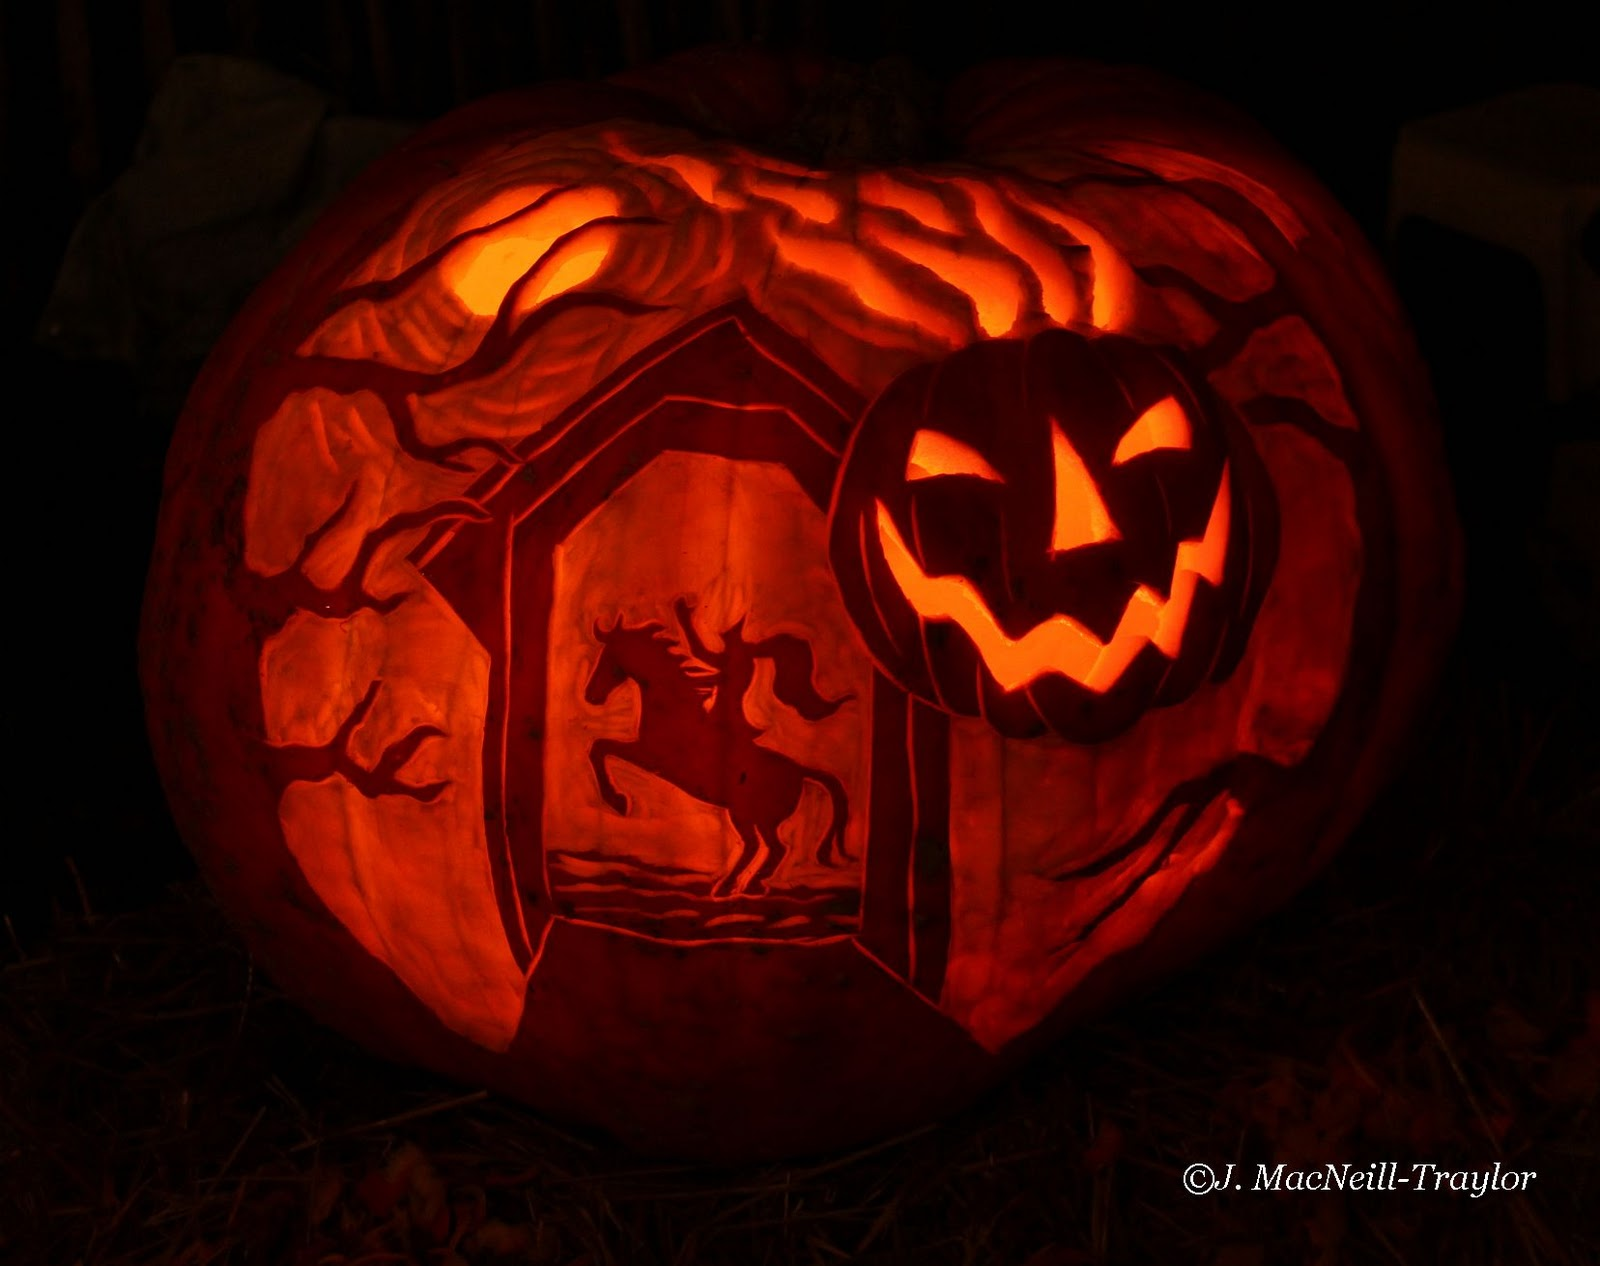 Sleepy Hollow Ford >> The Mare's Tales - Gypsy Mare Studios: Great Pumpkin Carve